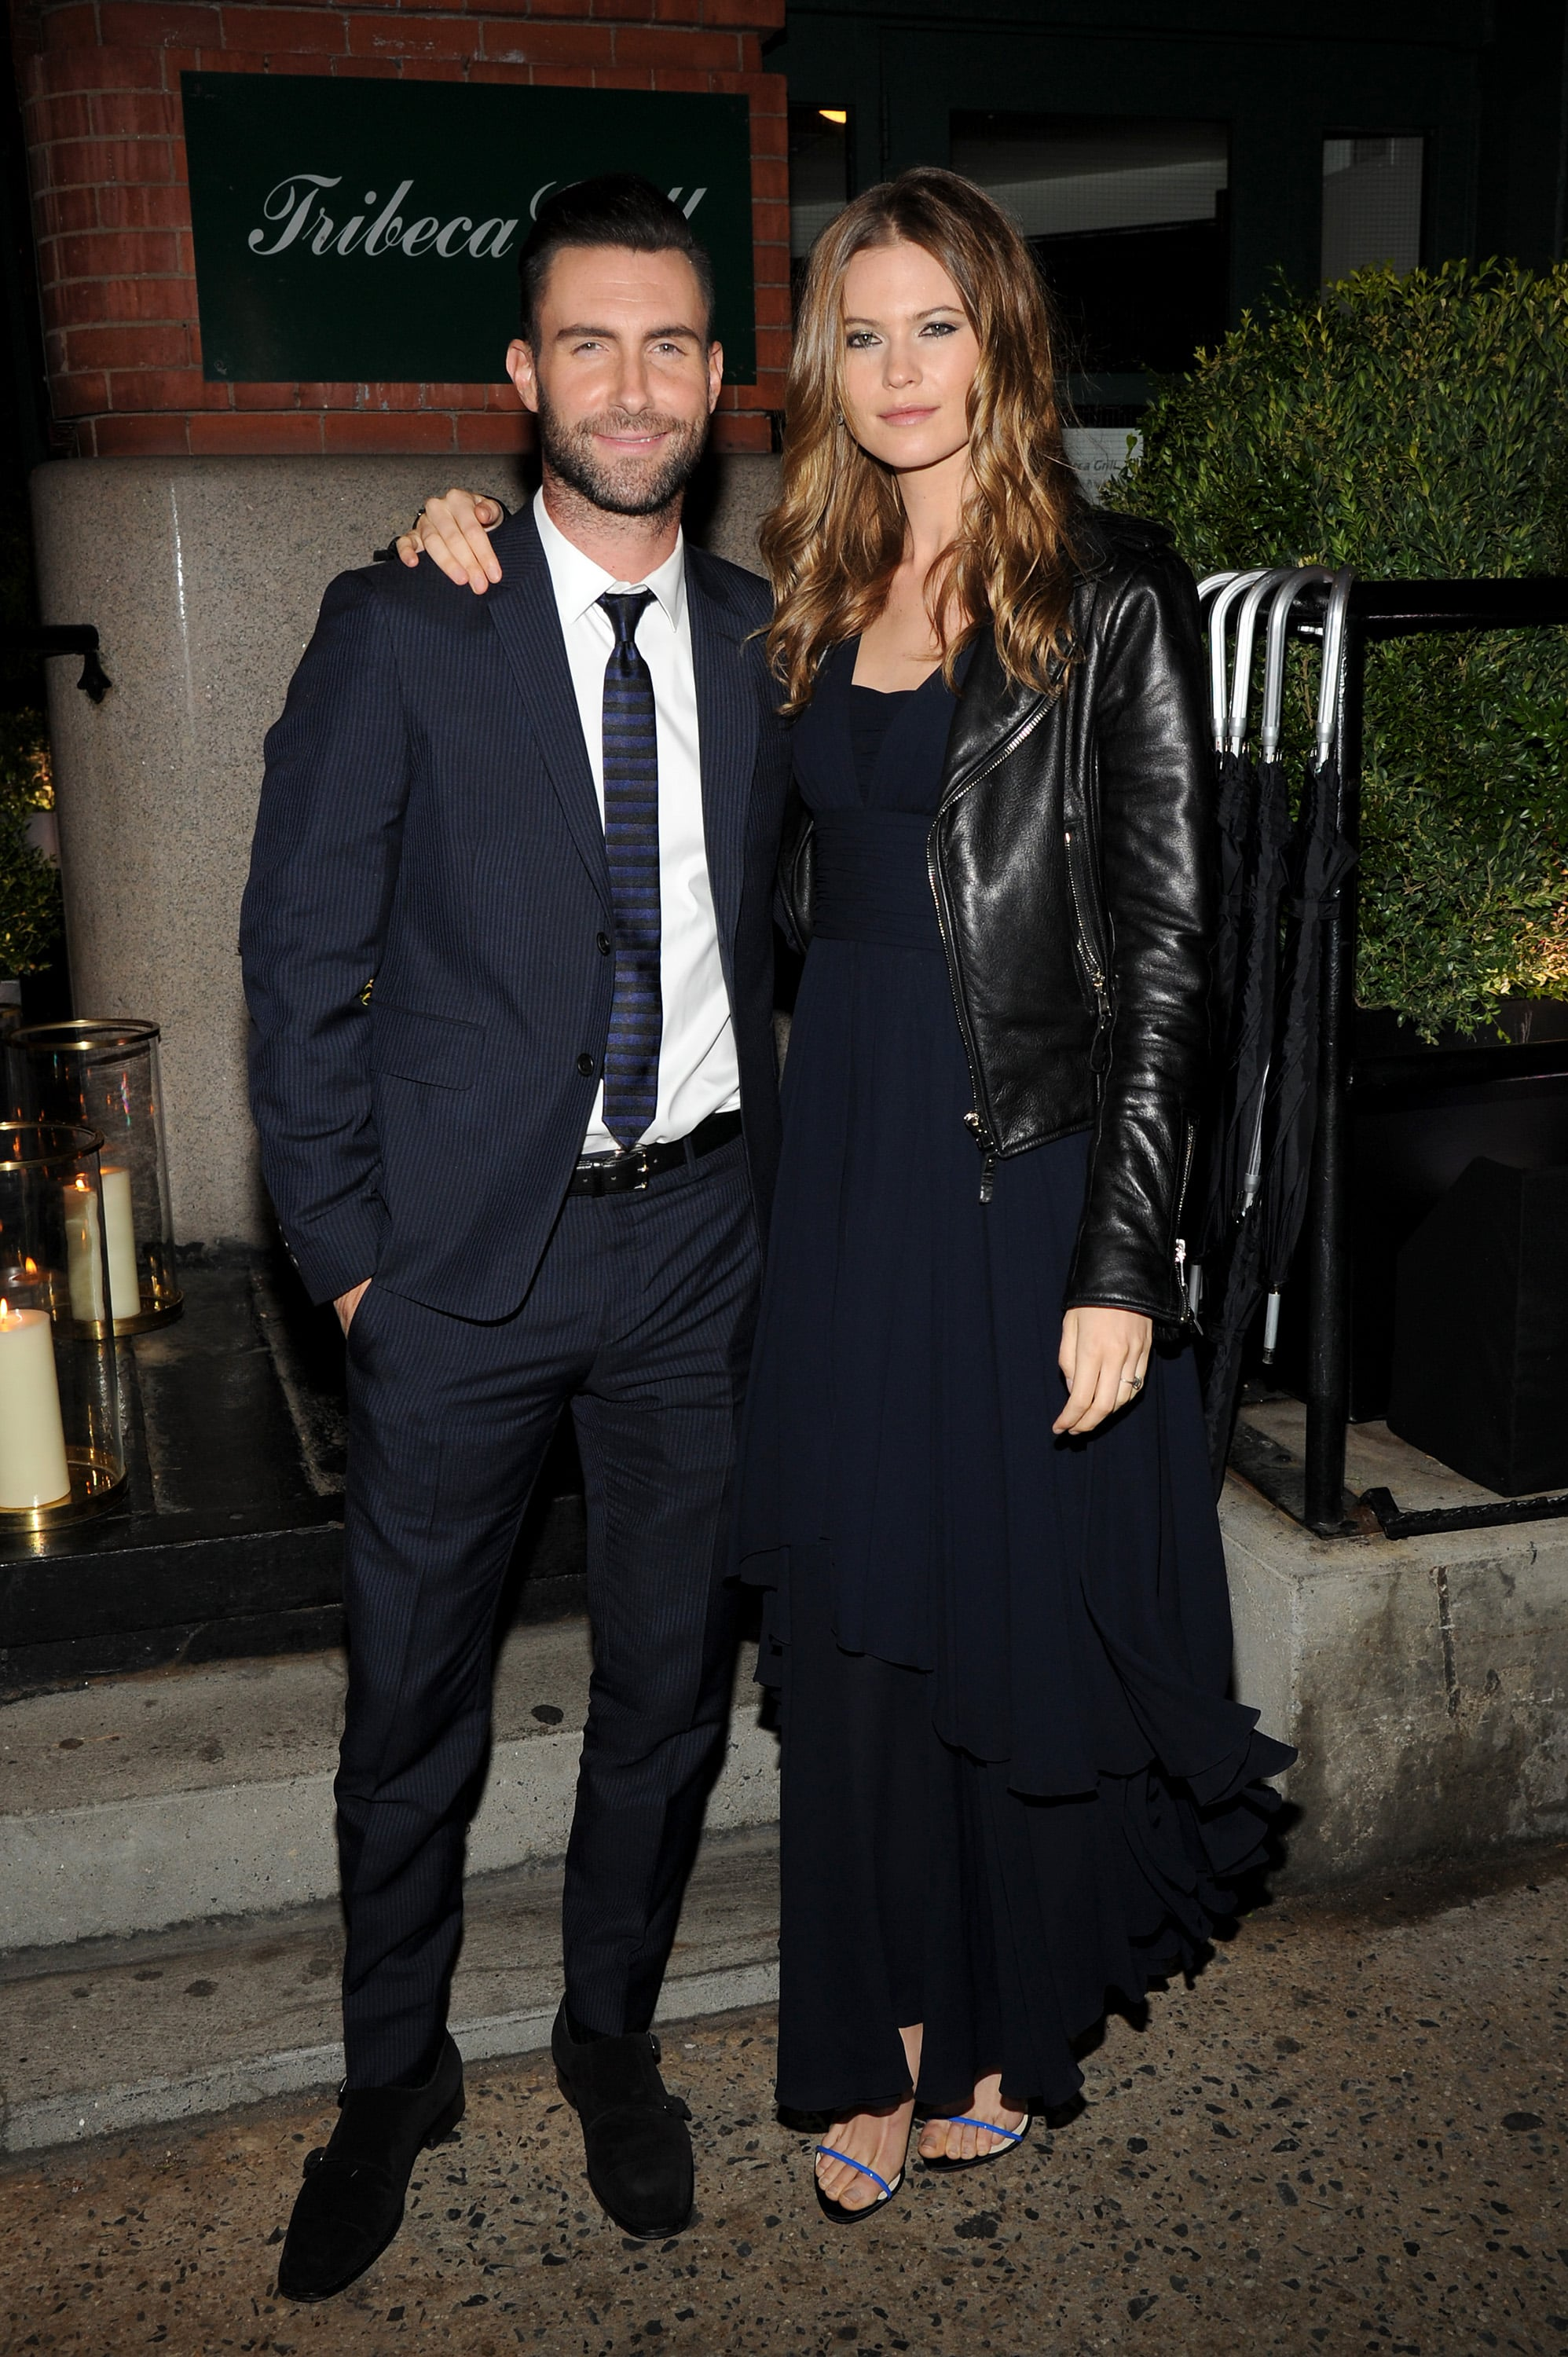 Adam Levine and Behati Prinsloo attended a Chanel dinner for Begin Again.